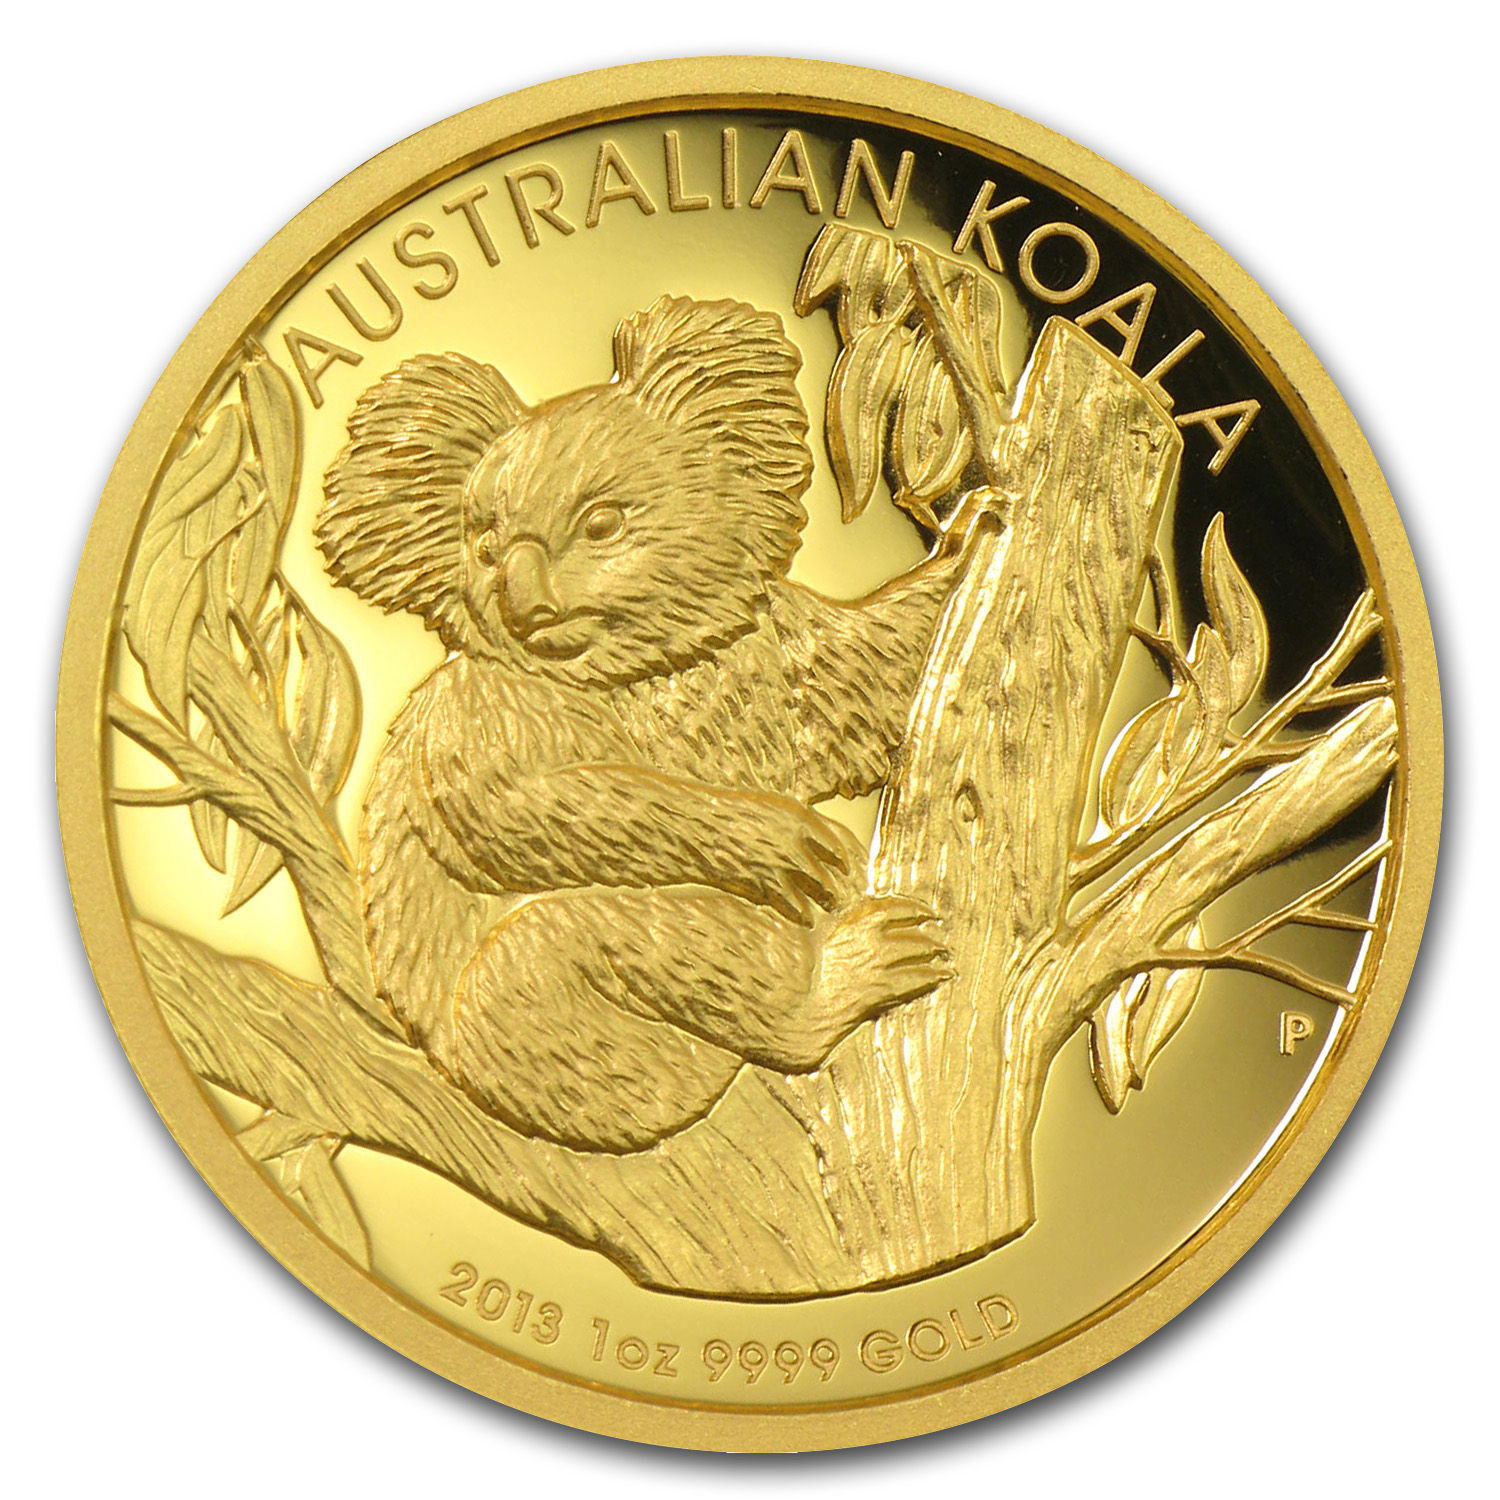 2013-P 1 oz Australian Gold Koala Proof (High Relief, Box & COA)